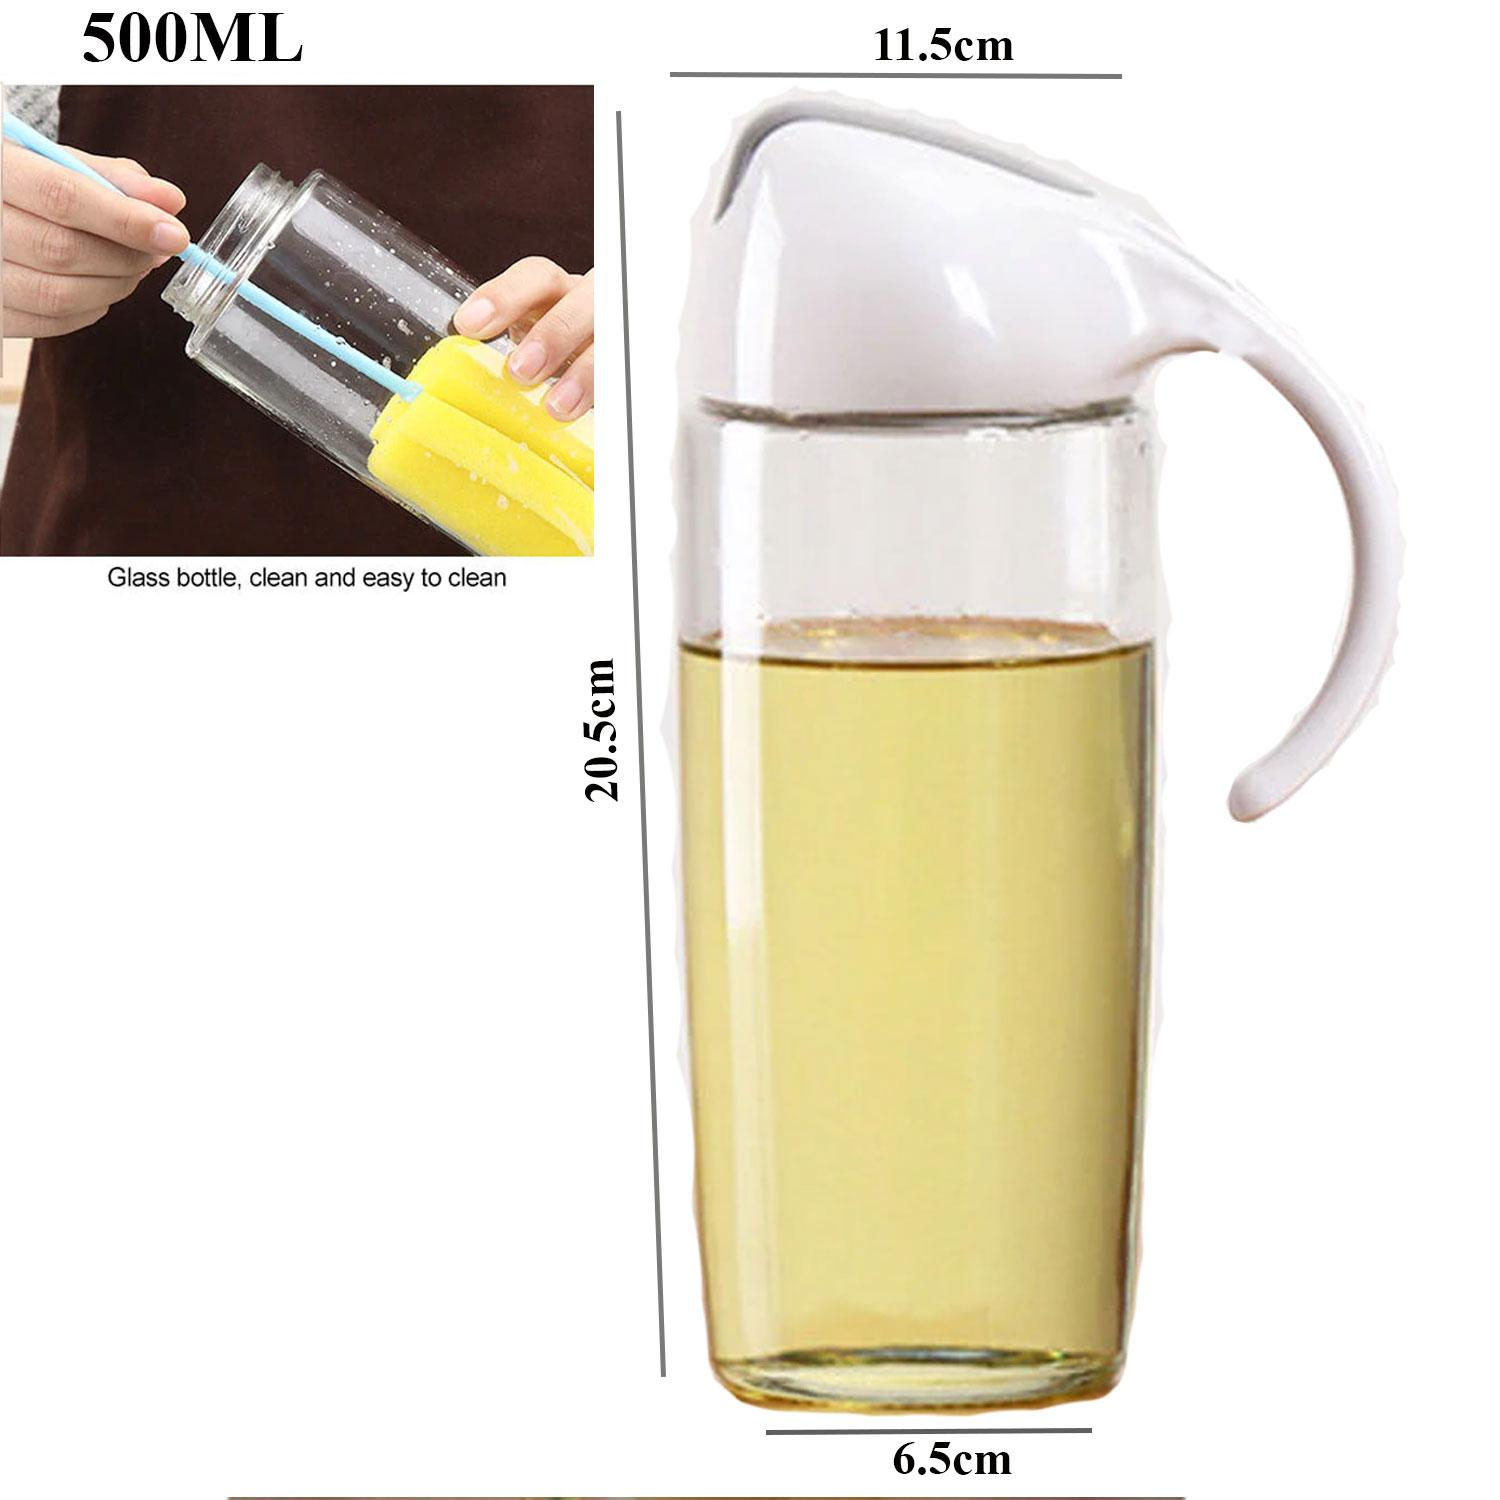 Leakproof Oil Dispenser Sauce Vinegar Bottle Gravy Boat Oil Pourer Bottle For Cooking Kitchen Tools (white) By Gonzalez General Merchandise.